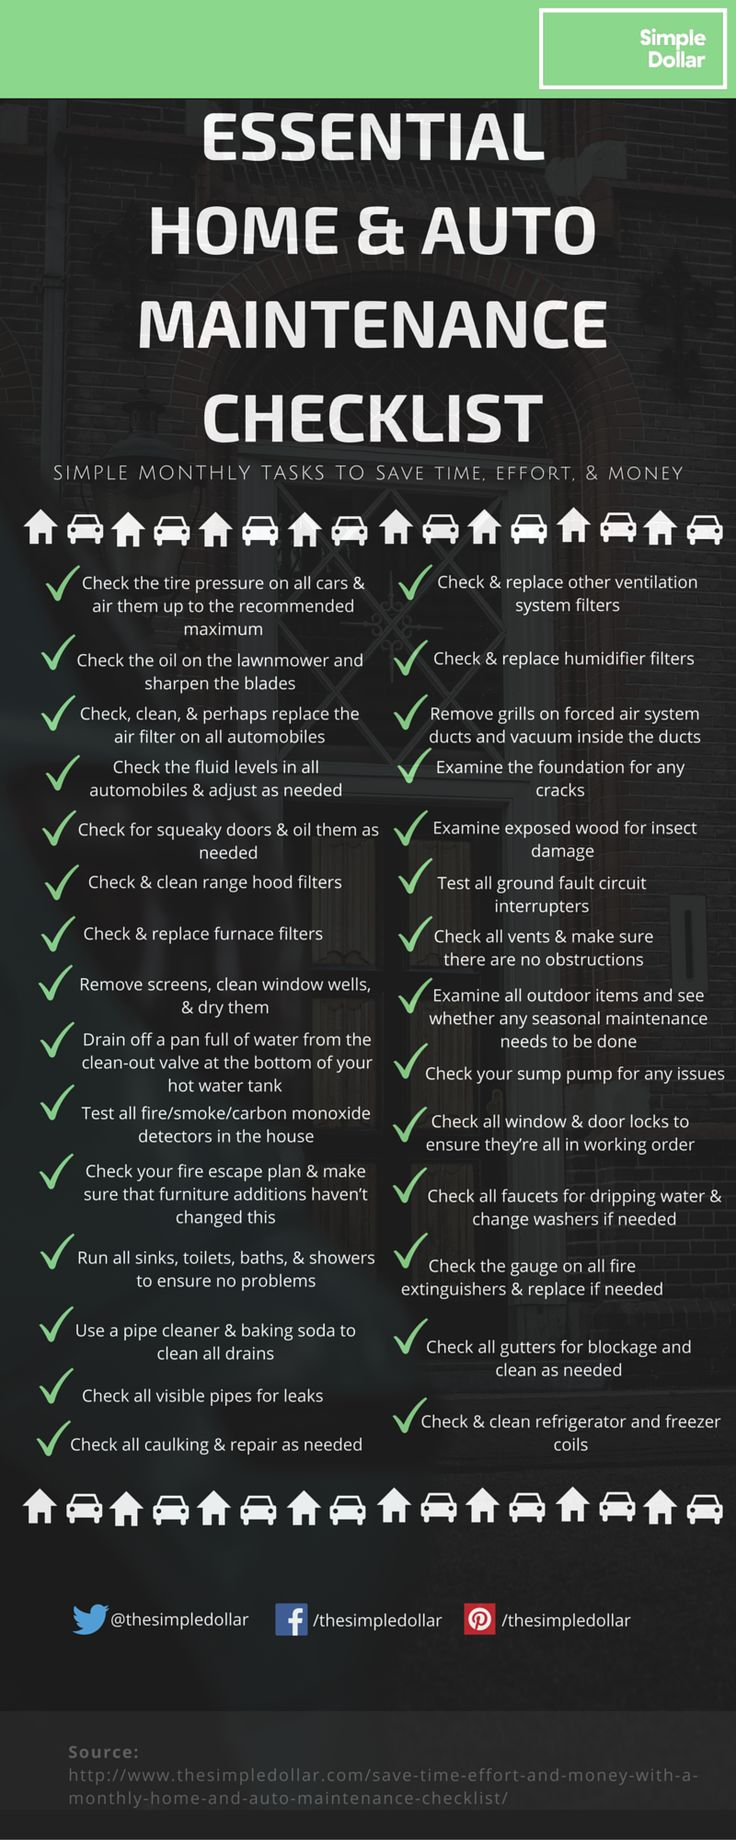 Save time, effort, and money with this simple monthly home & auto maintenance checklist